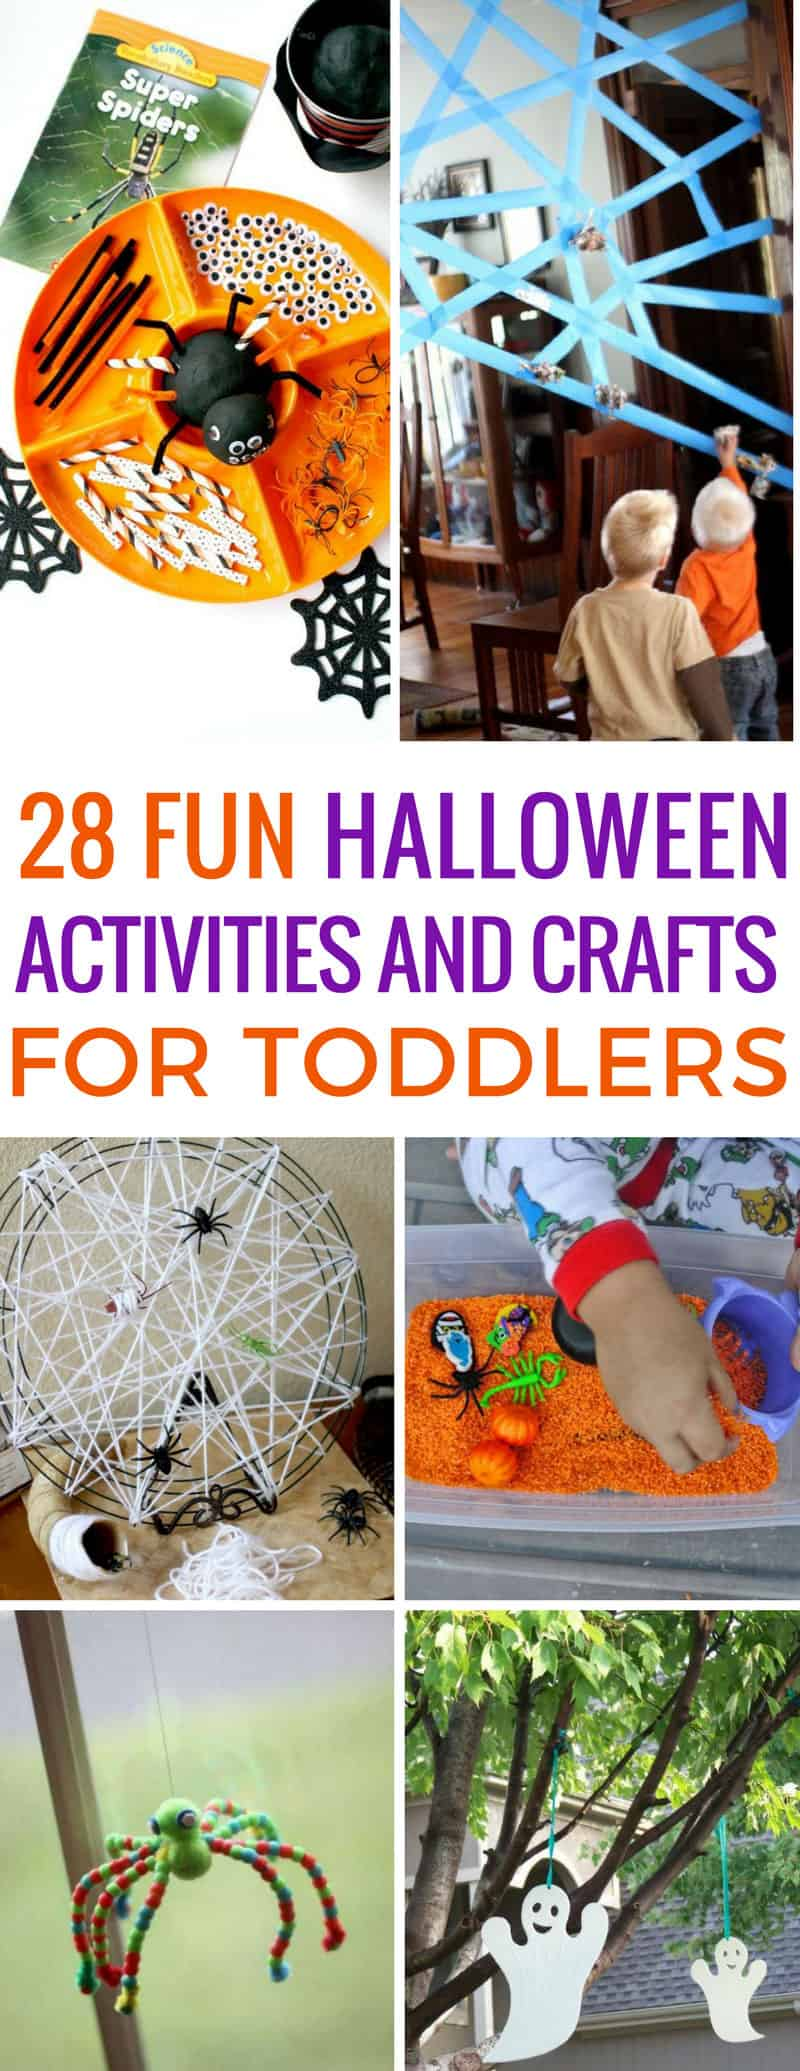 These Halloween activities are perfect for toddlers and tot school! Thanks for sharing!